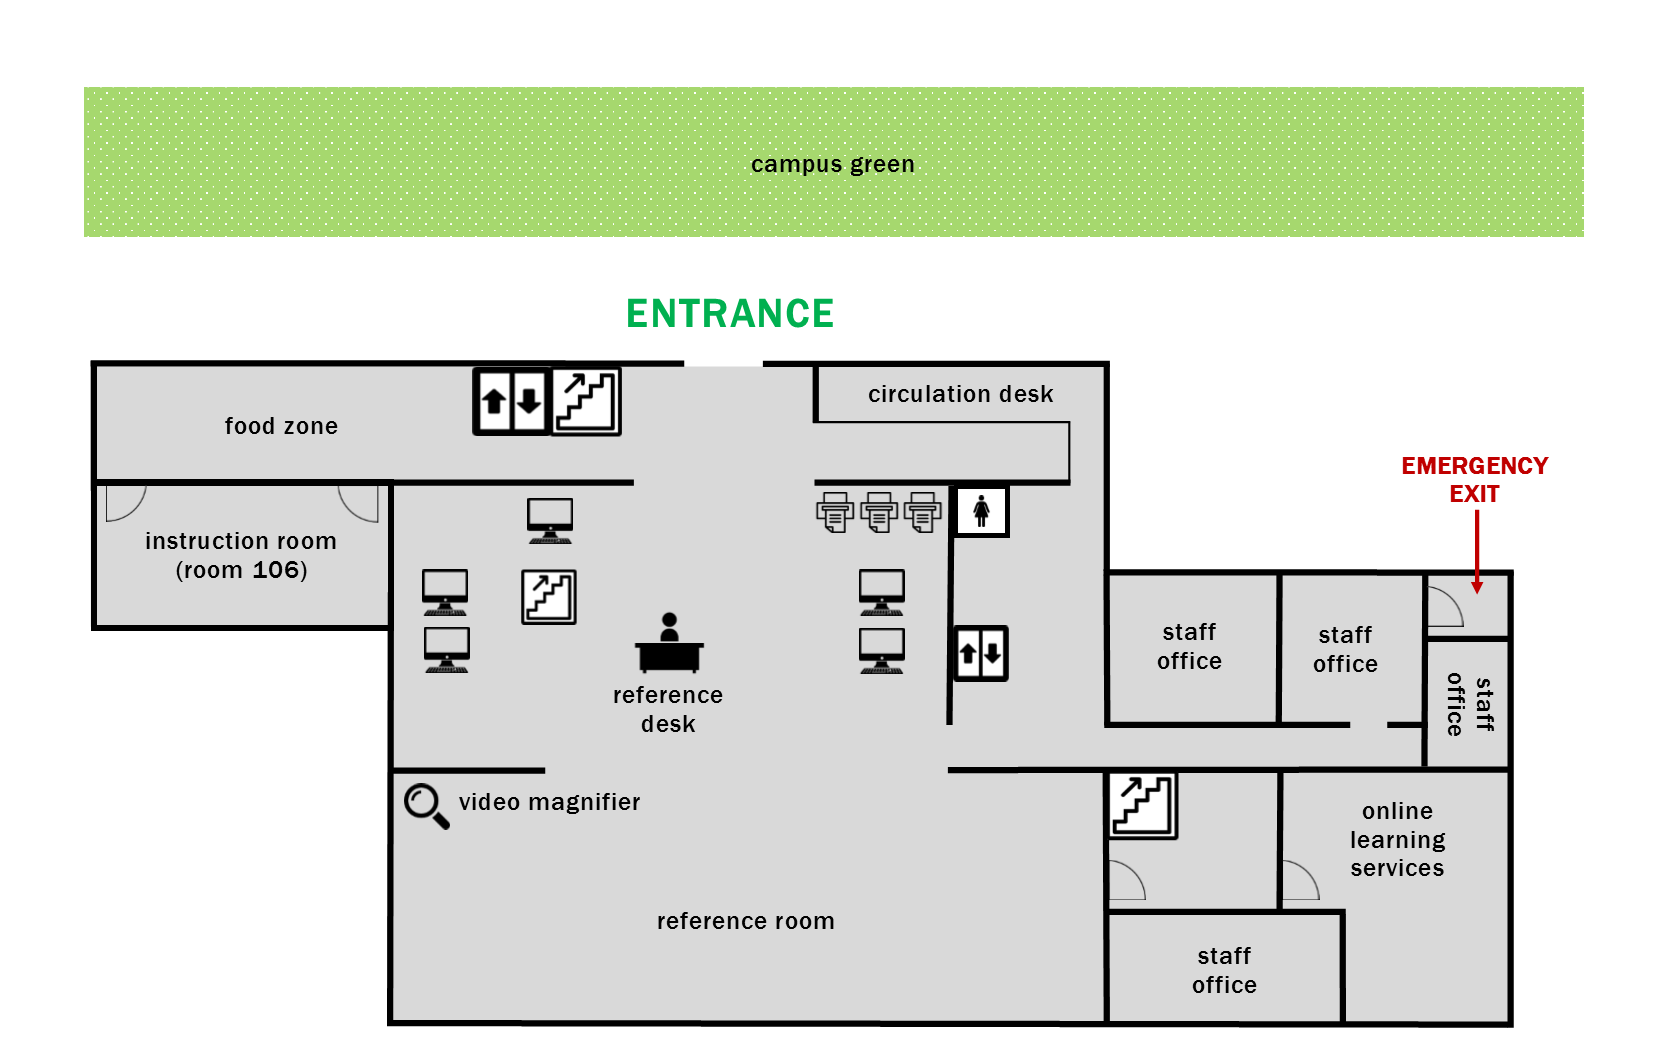 first floor layout map indicating the location of entrance/exit, elevators, stairwells, and restrooms.